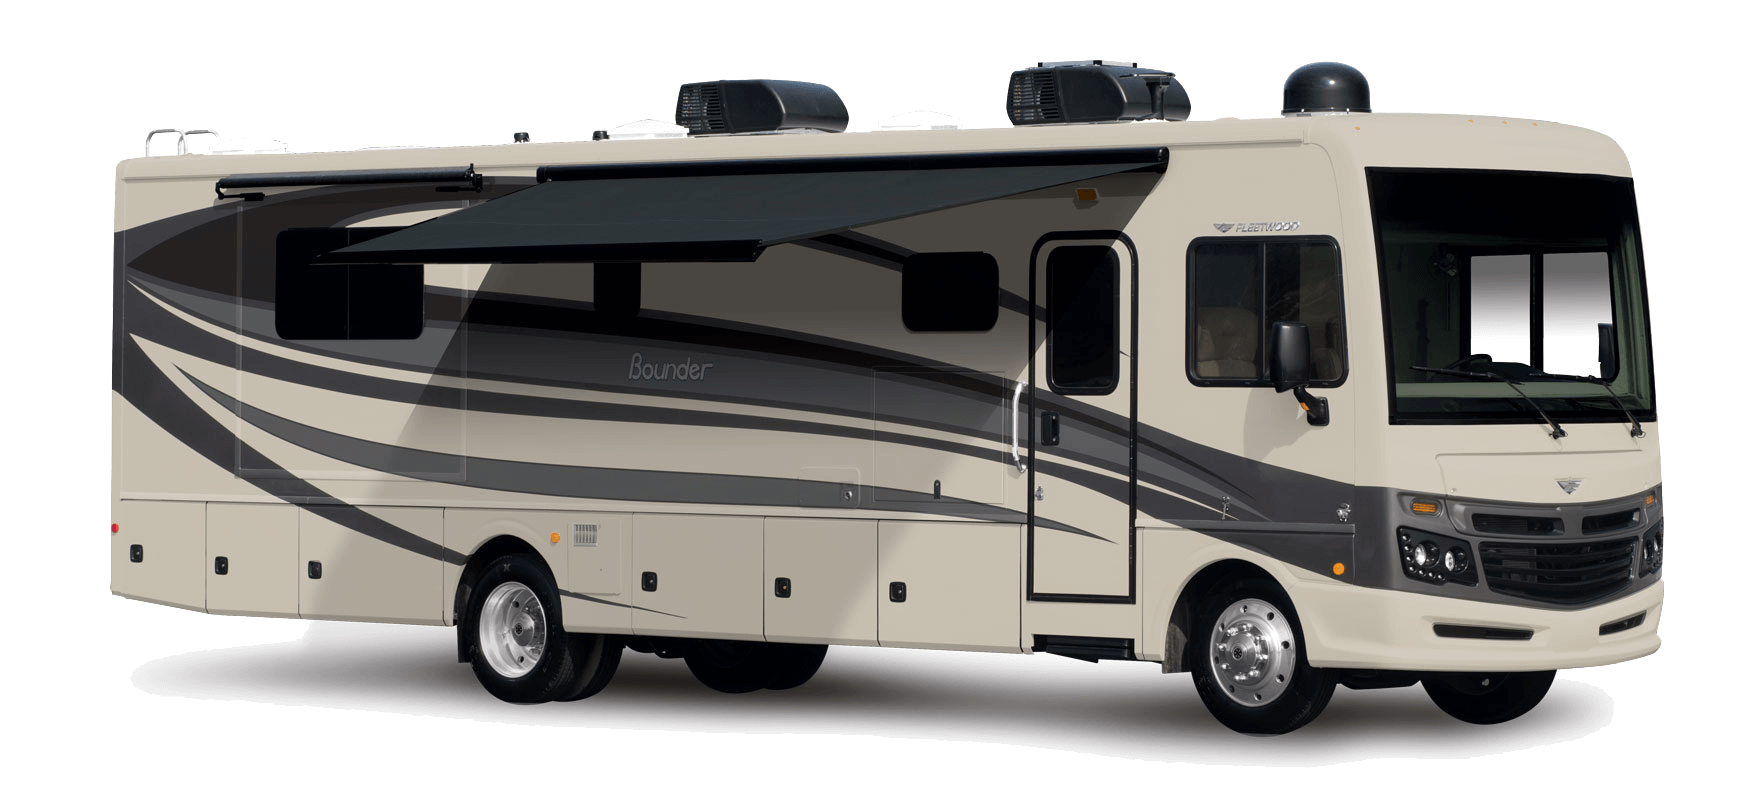 Fleetwood Rv Fleetwood Bounde...